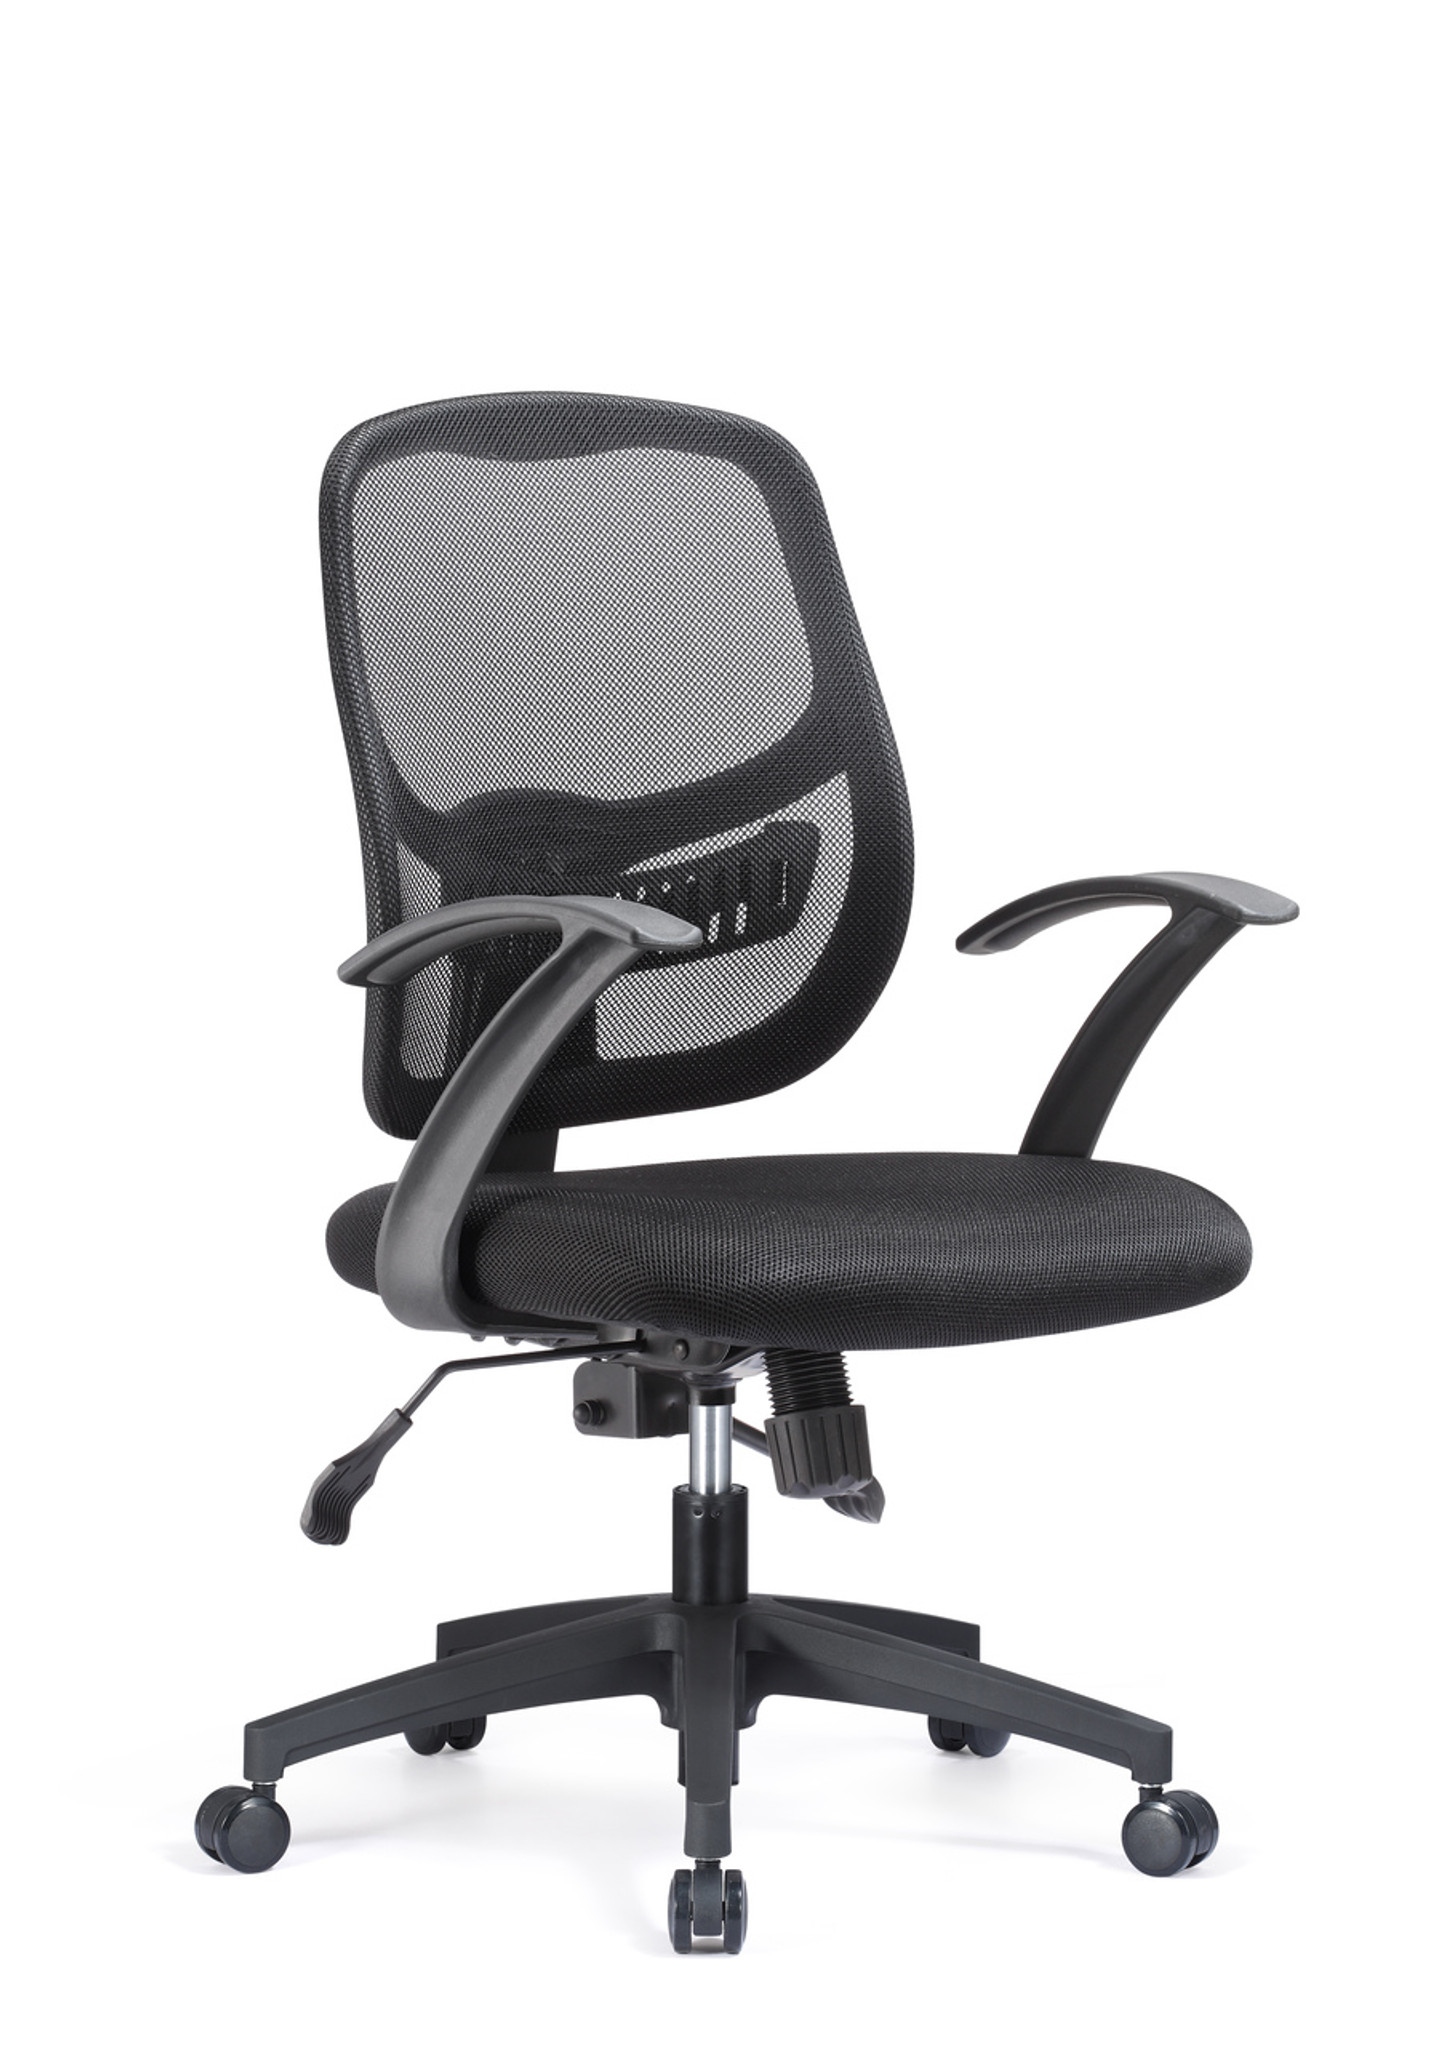 Incroyable Modern Design Adjustable Height Office Chair Mesh   Orlando Office Furniture